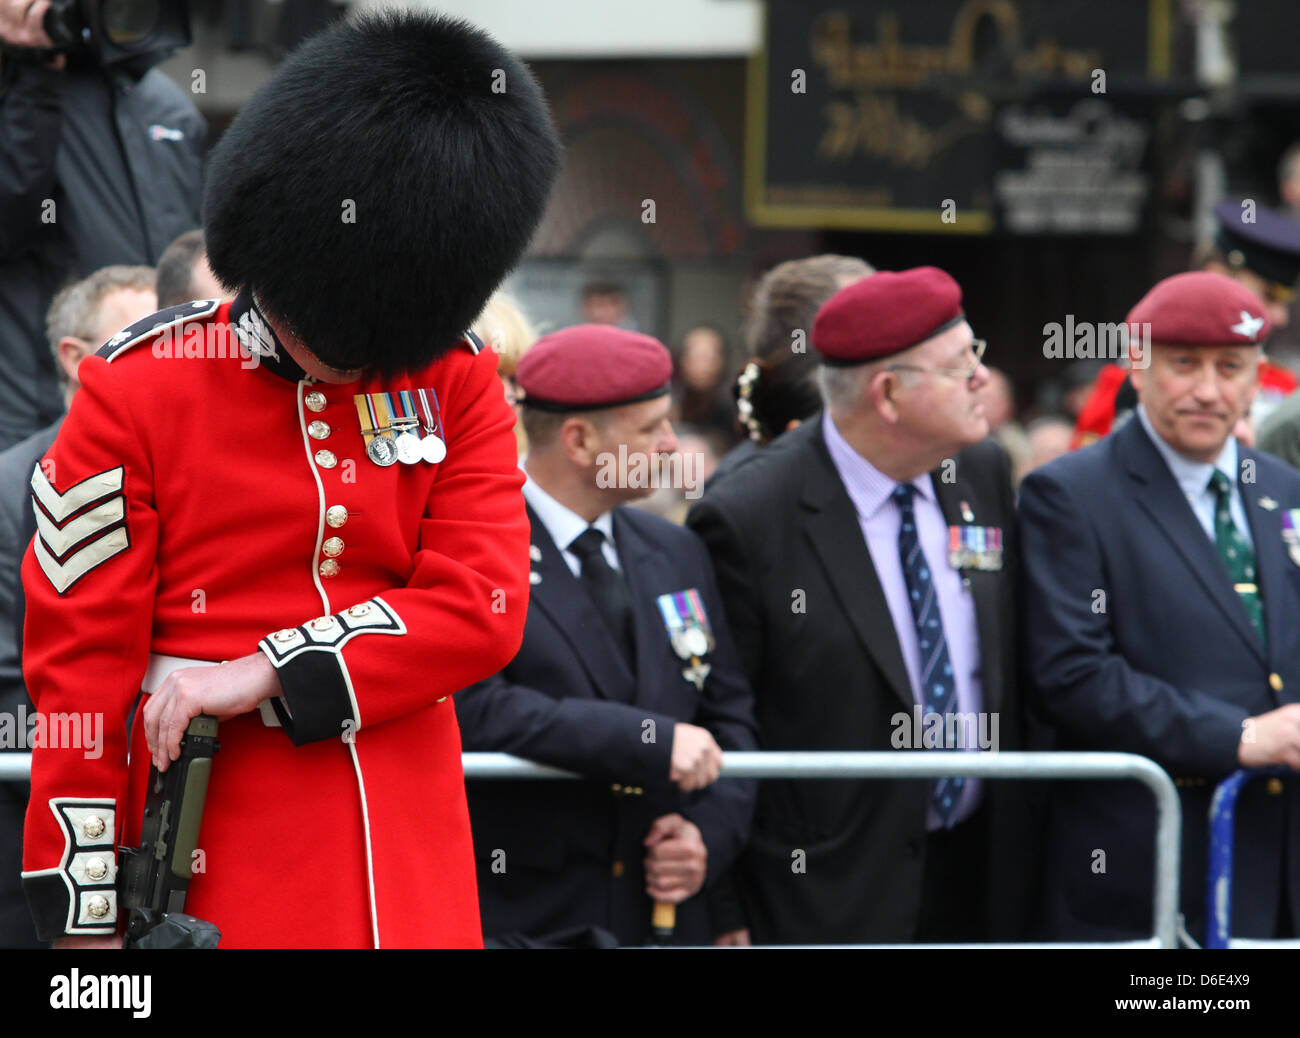 GUARDSMAN BOWS HEAD IN FRONT OF EX SERVICEMEN MARGRET THATCHER FUNERAL 17 April 2013 LUDGATE LONDON ENGLAND UK - Stock Image